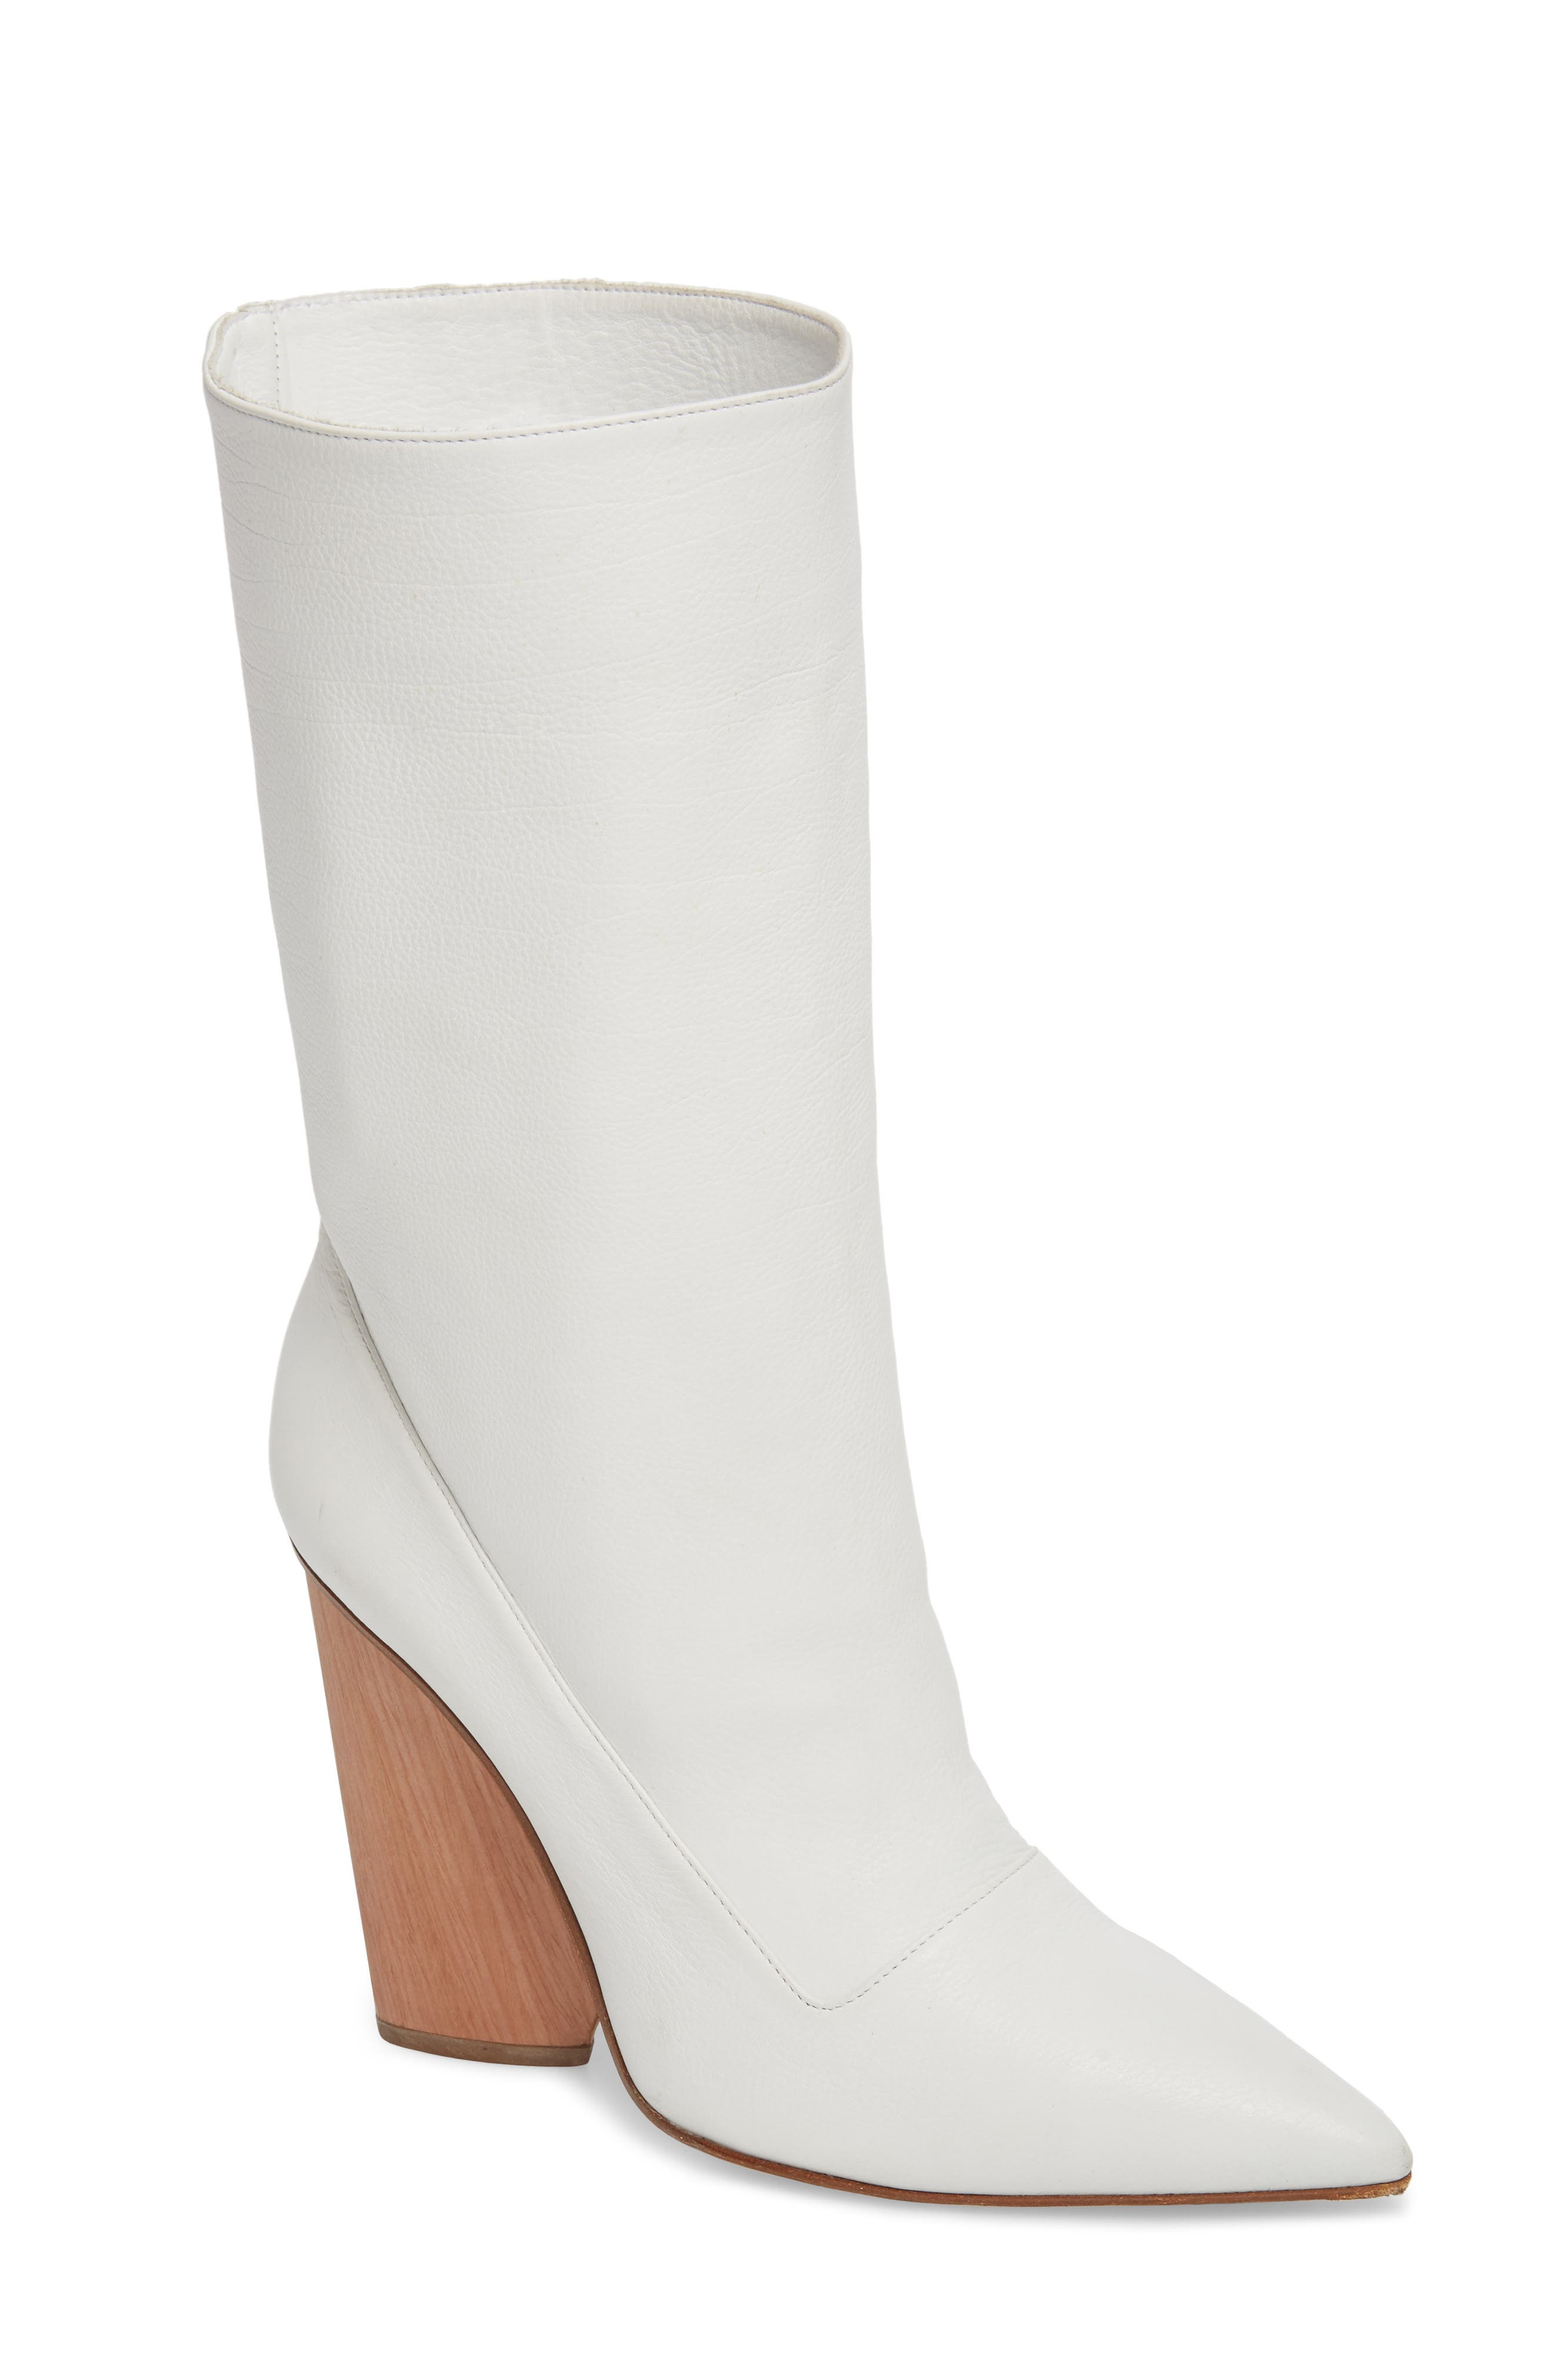 Judd Pointy Toe Boot,                             Main thumbnail 1, color,                             White